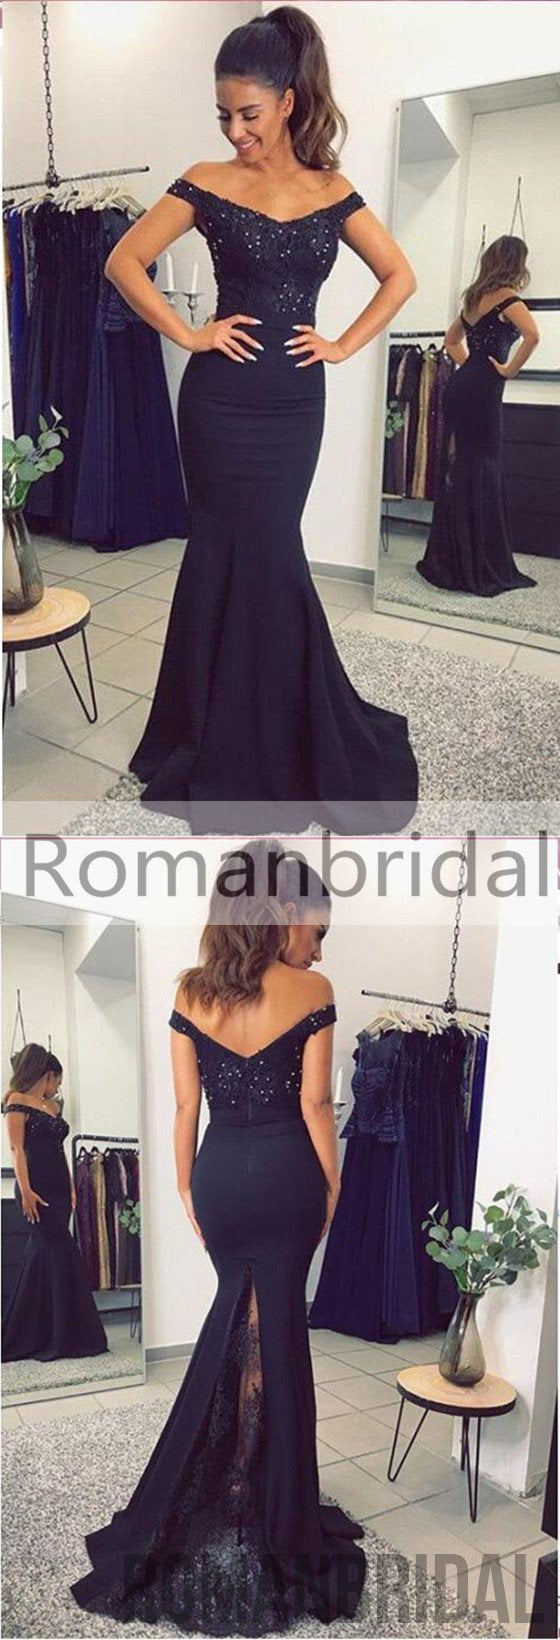 2018 Amazing Hot Lace Mermaid Prom Dresses 2018 Appliques Beaded Open Back Evening Gown, Prom Dress, PD0435